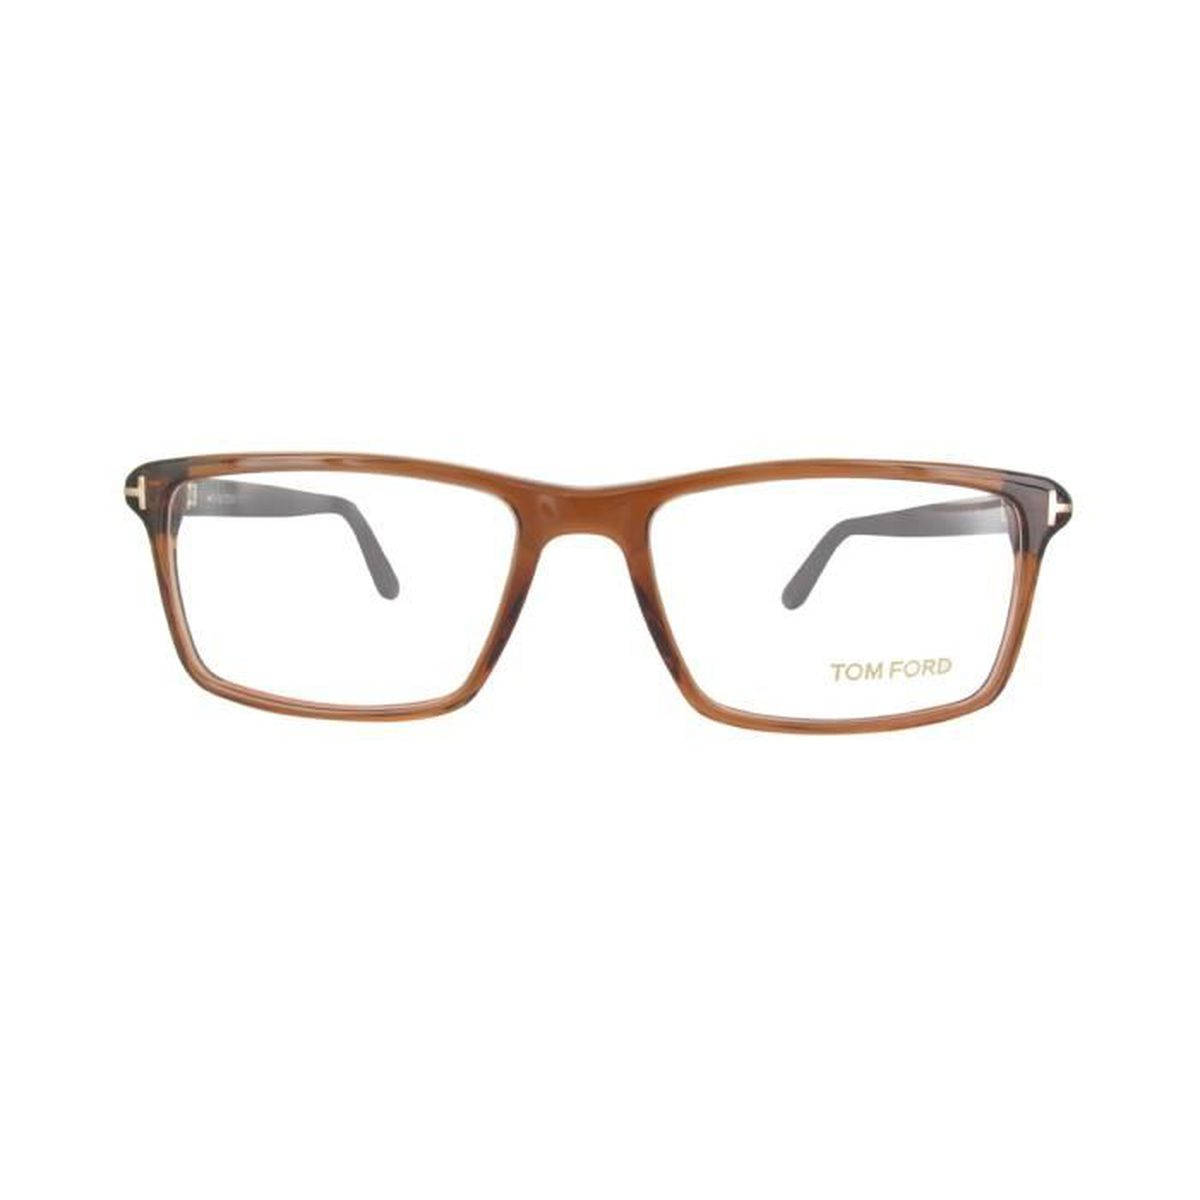 Lunettes Vue Homme Tom Ford « One More Soul 72b0f35d7dcf